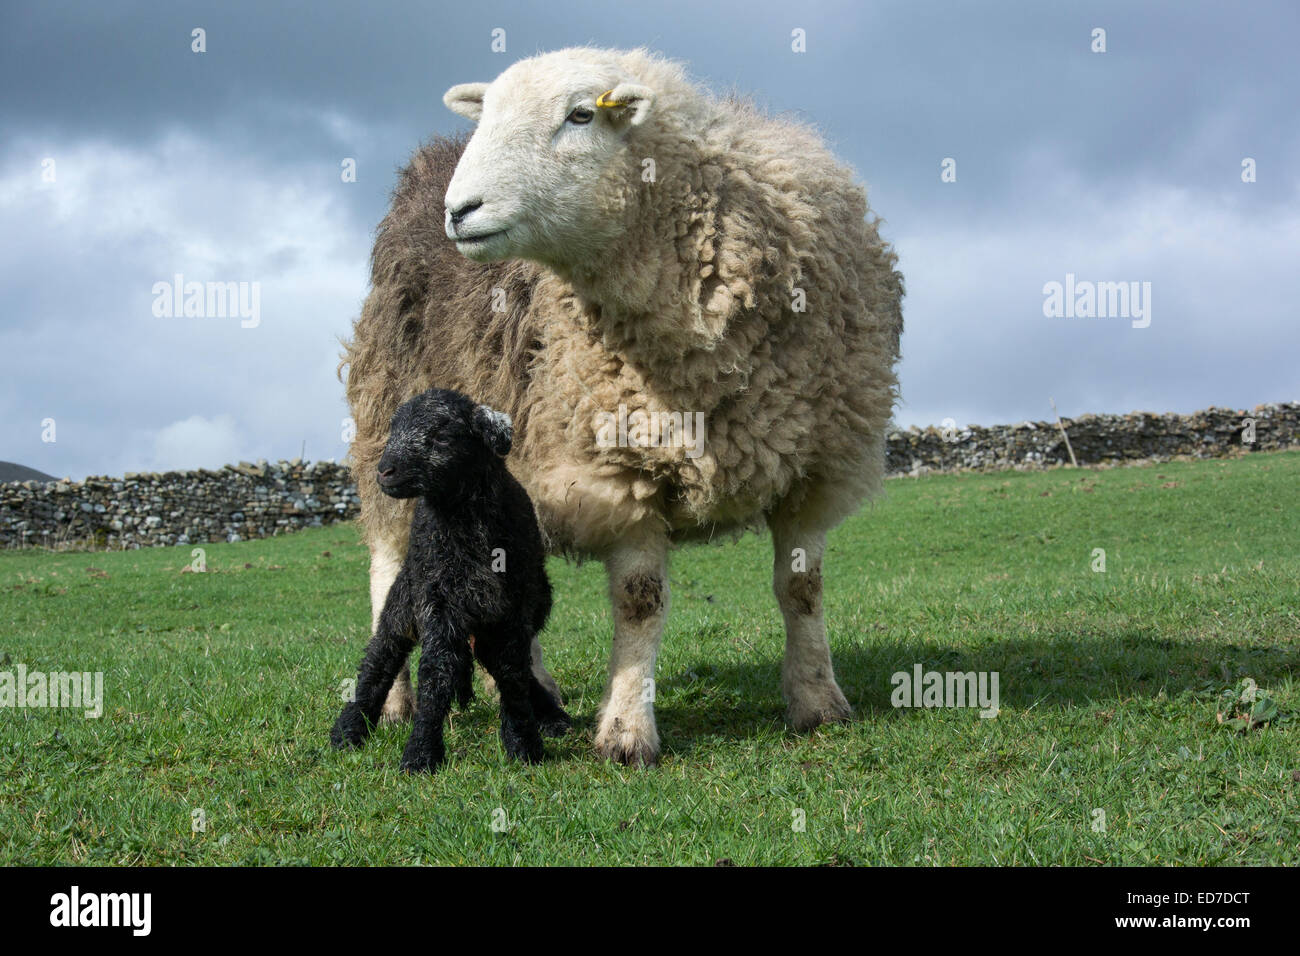 Herdwick ewwe with young lamb, Cumbria, UK. - Stock Image